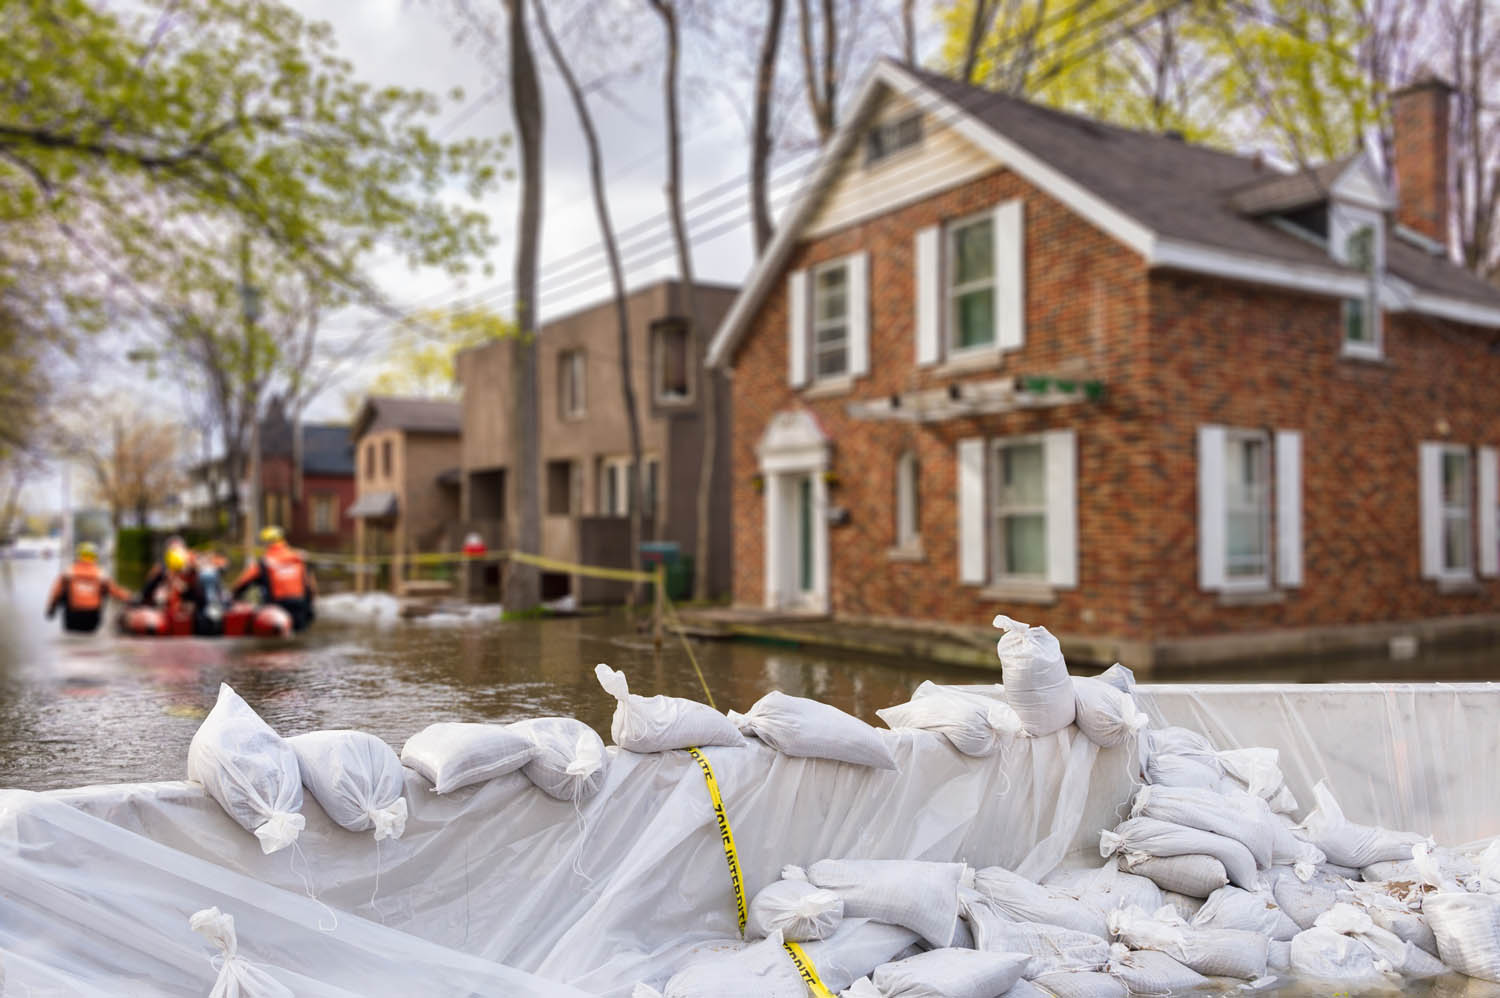 Flood Insurance Program